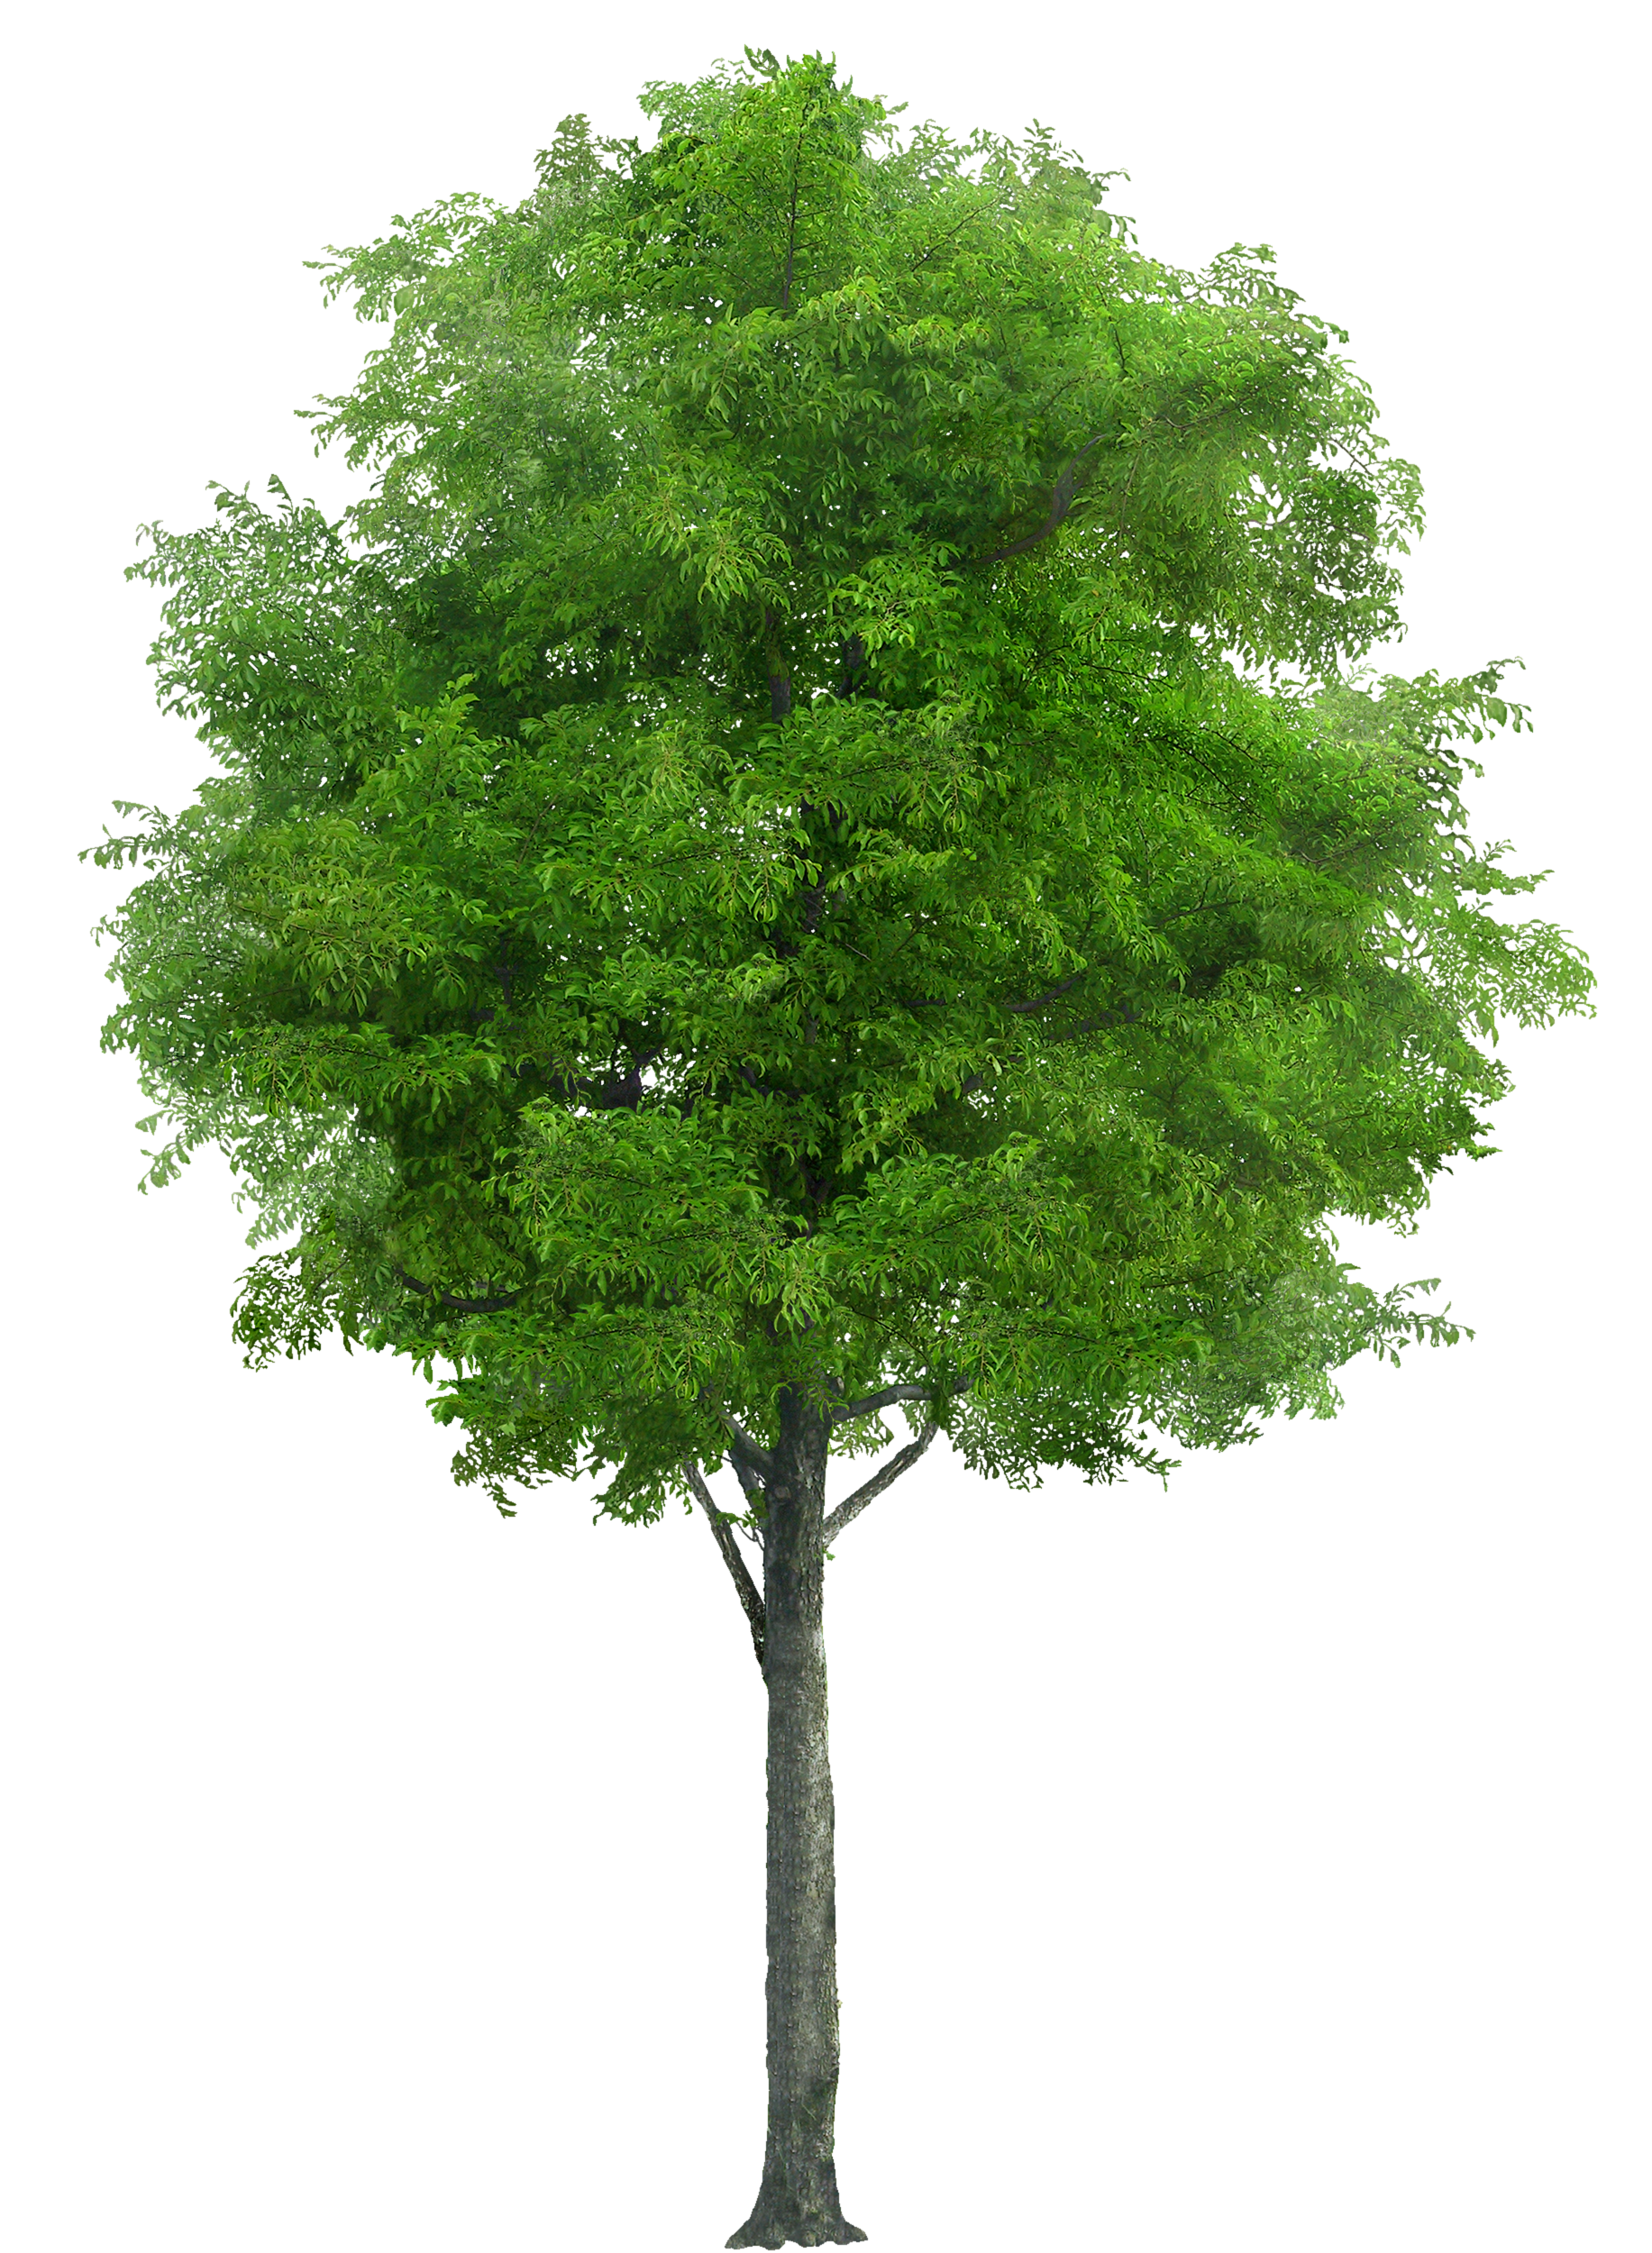 Realistic tree clipart jpg black and white download Realistic Tree PNG Image - PurePNG | Free transparent CC0 PNG Image ... jpg black and white download